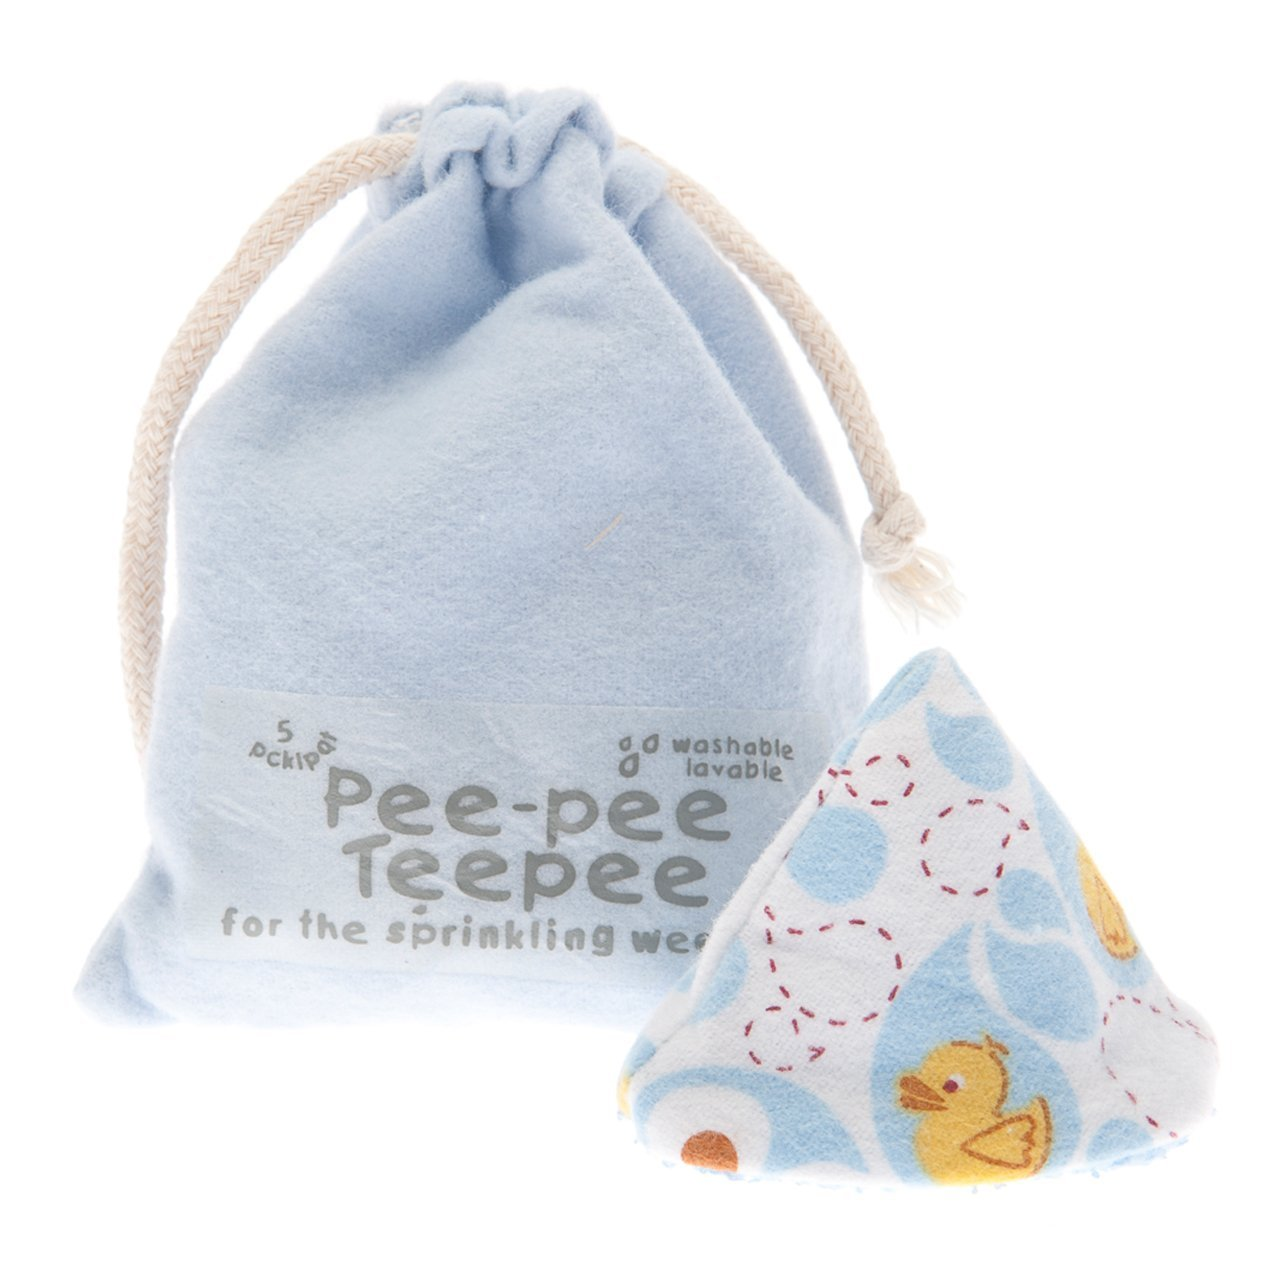 Pee-Pee Teepee Rubber Ducky Blue - Laundry Bag